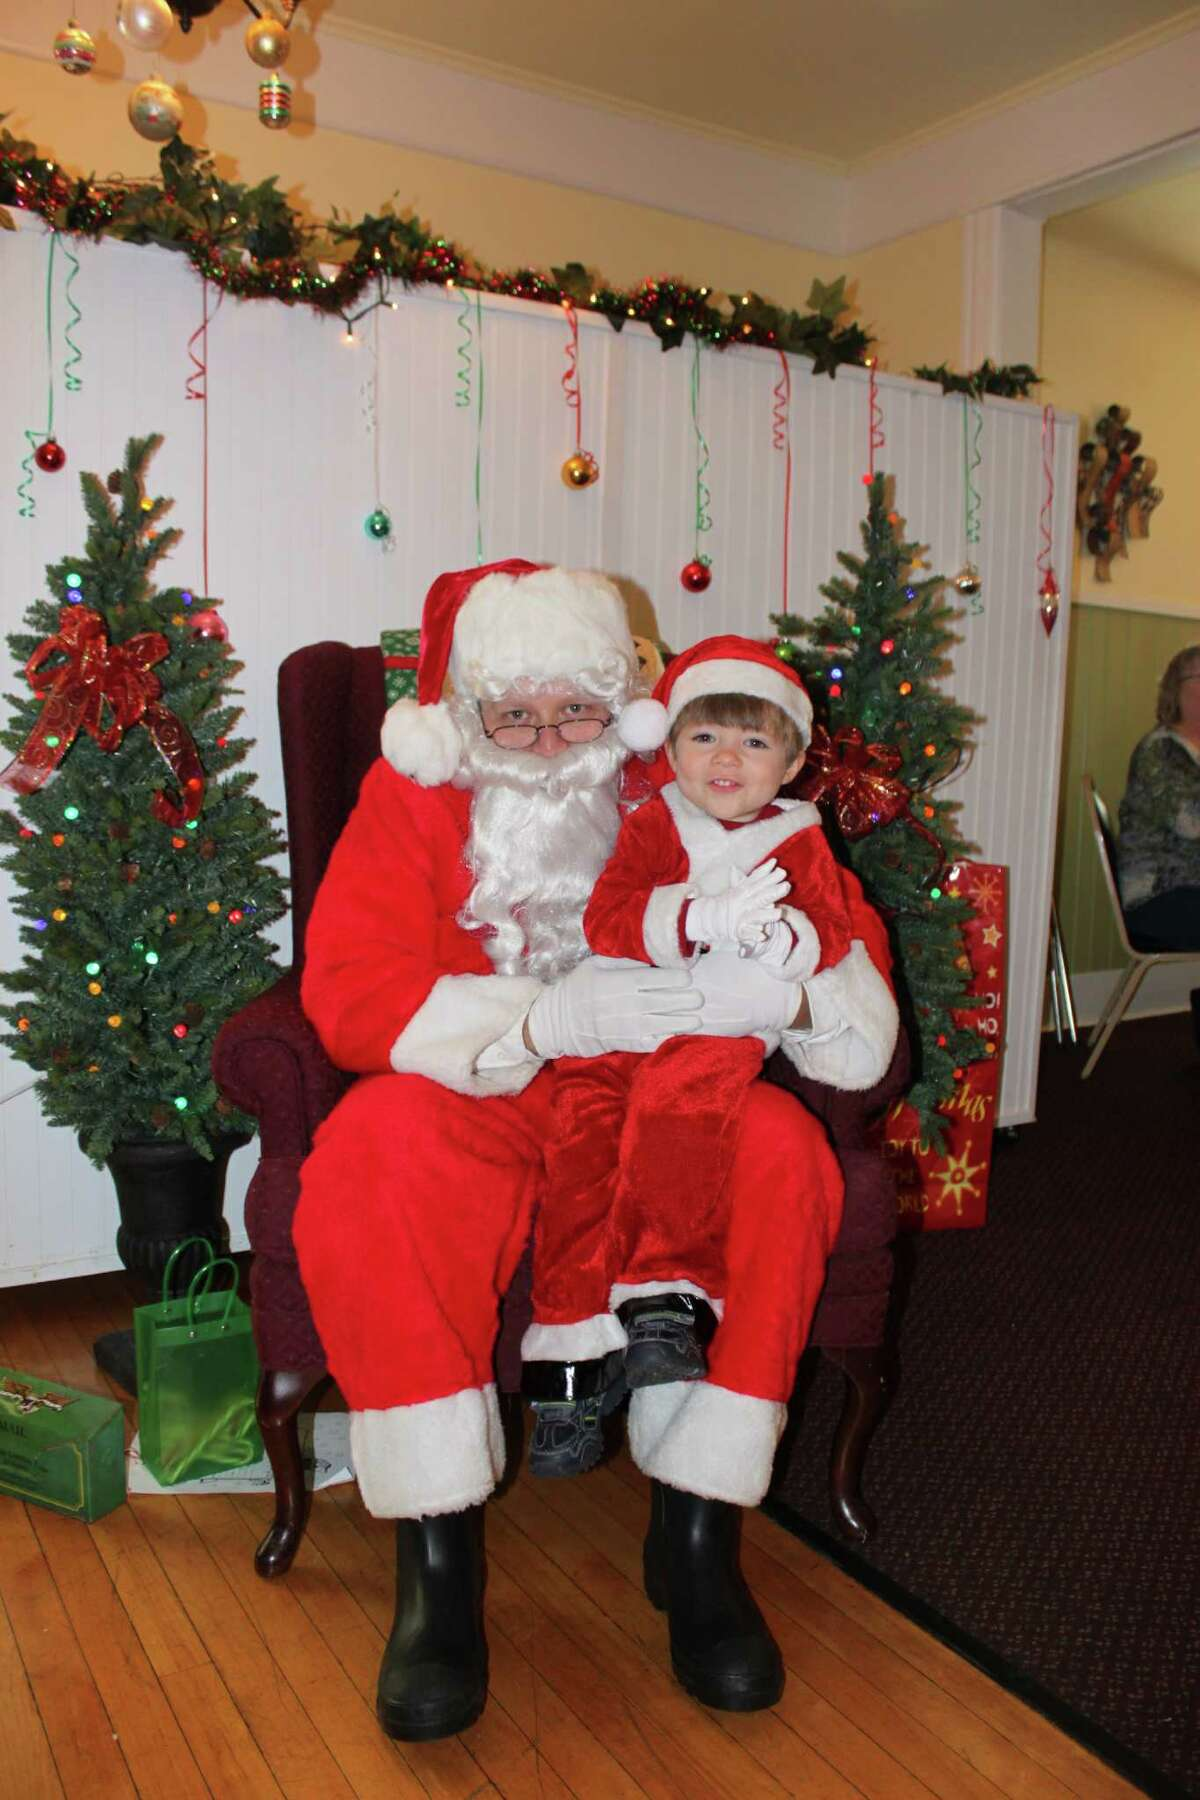 Hudson Treacy ? son of Dave and Nicole Treacy ? poses with Santa in his own mini Santa suit at the Girl Scout Breakfast with Santa event at Shawn P's at the Van Schaick Island Country Club in Cohoes.